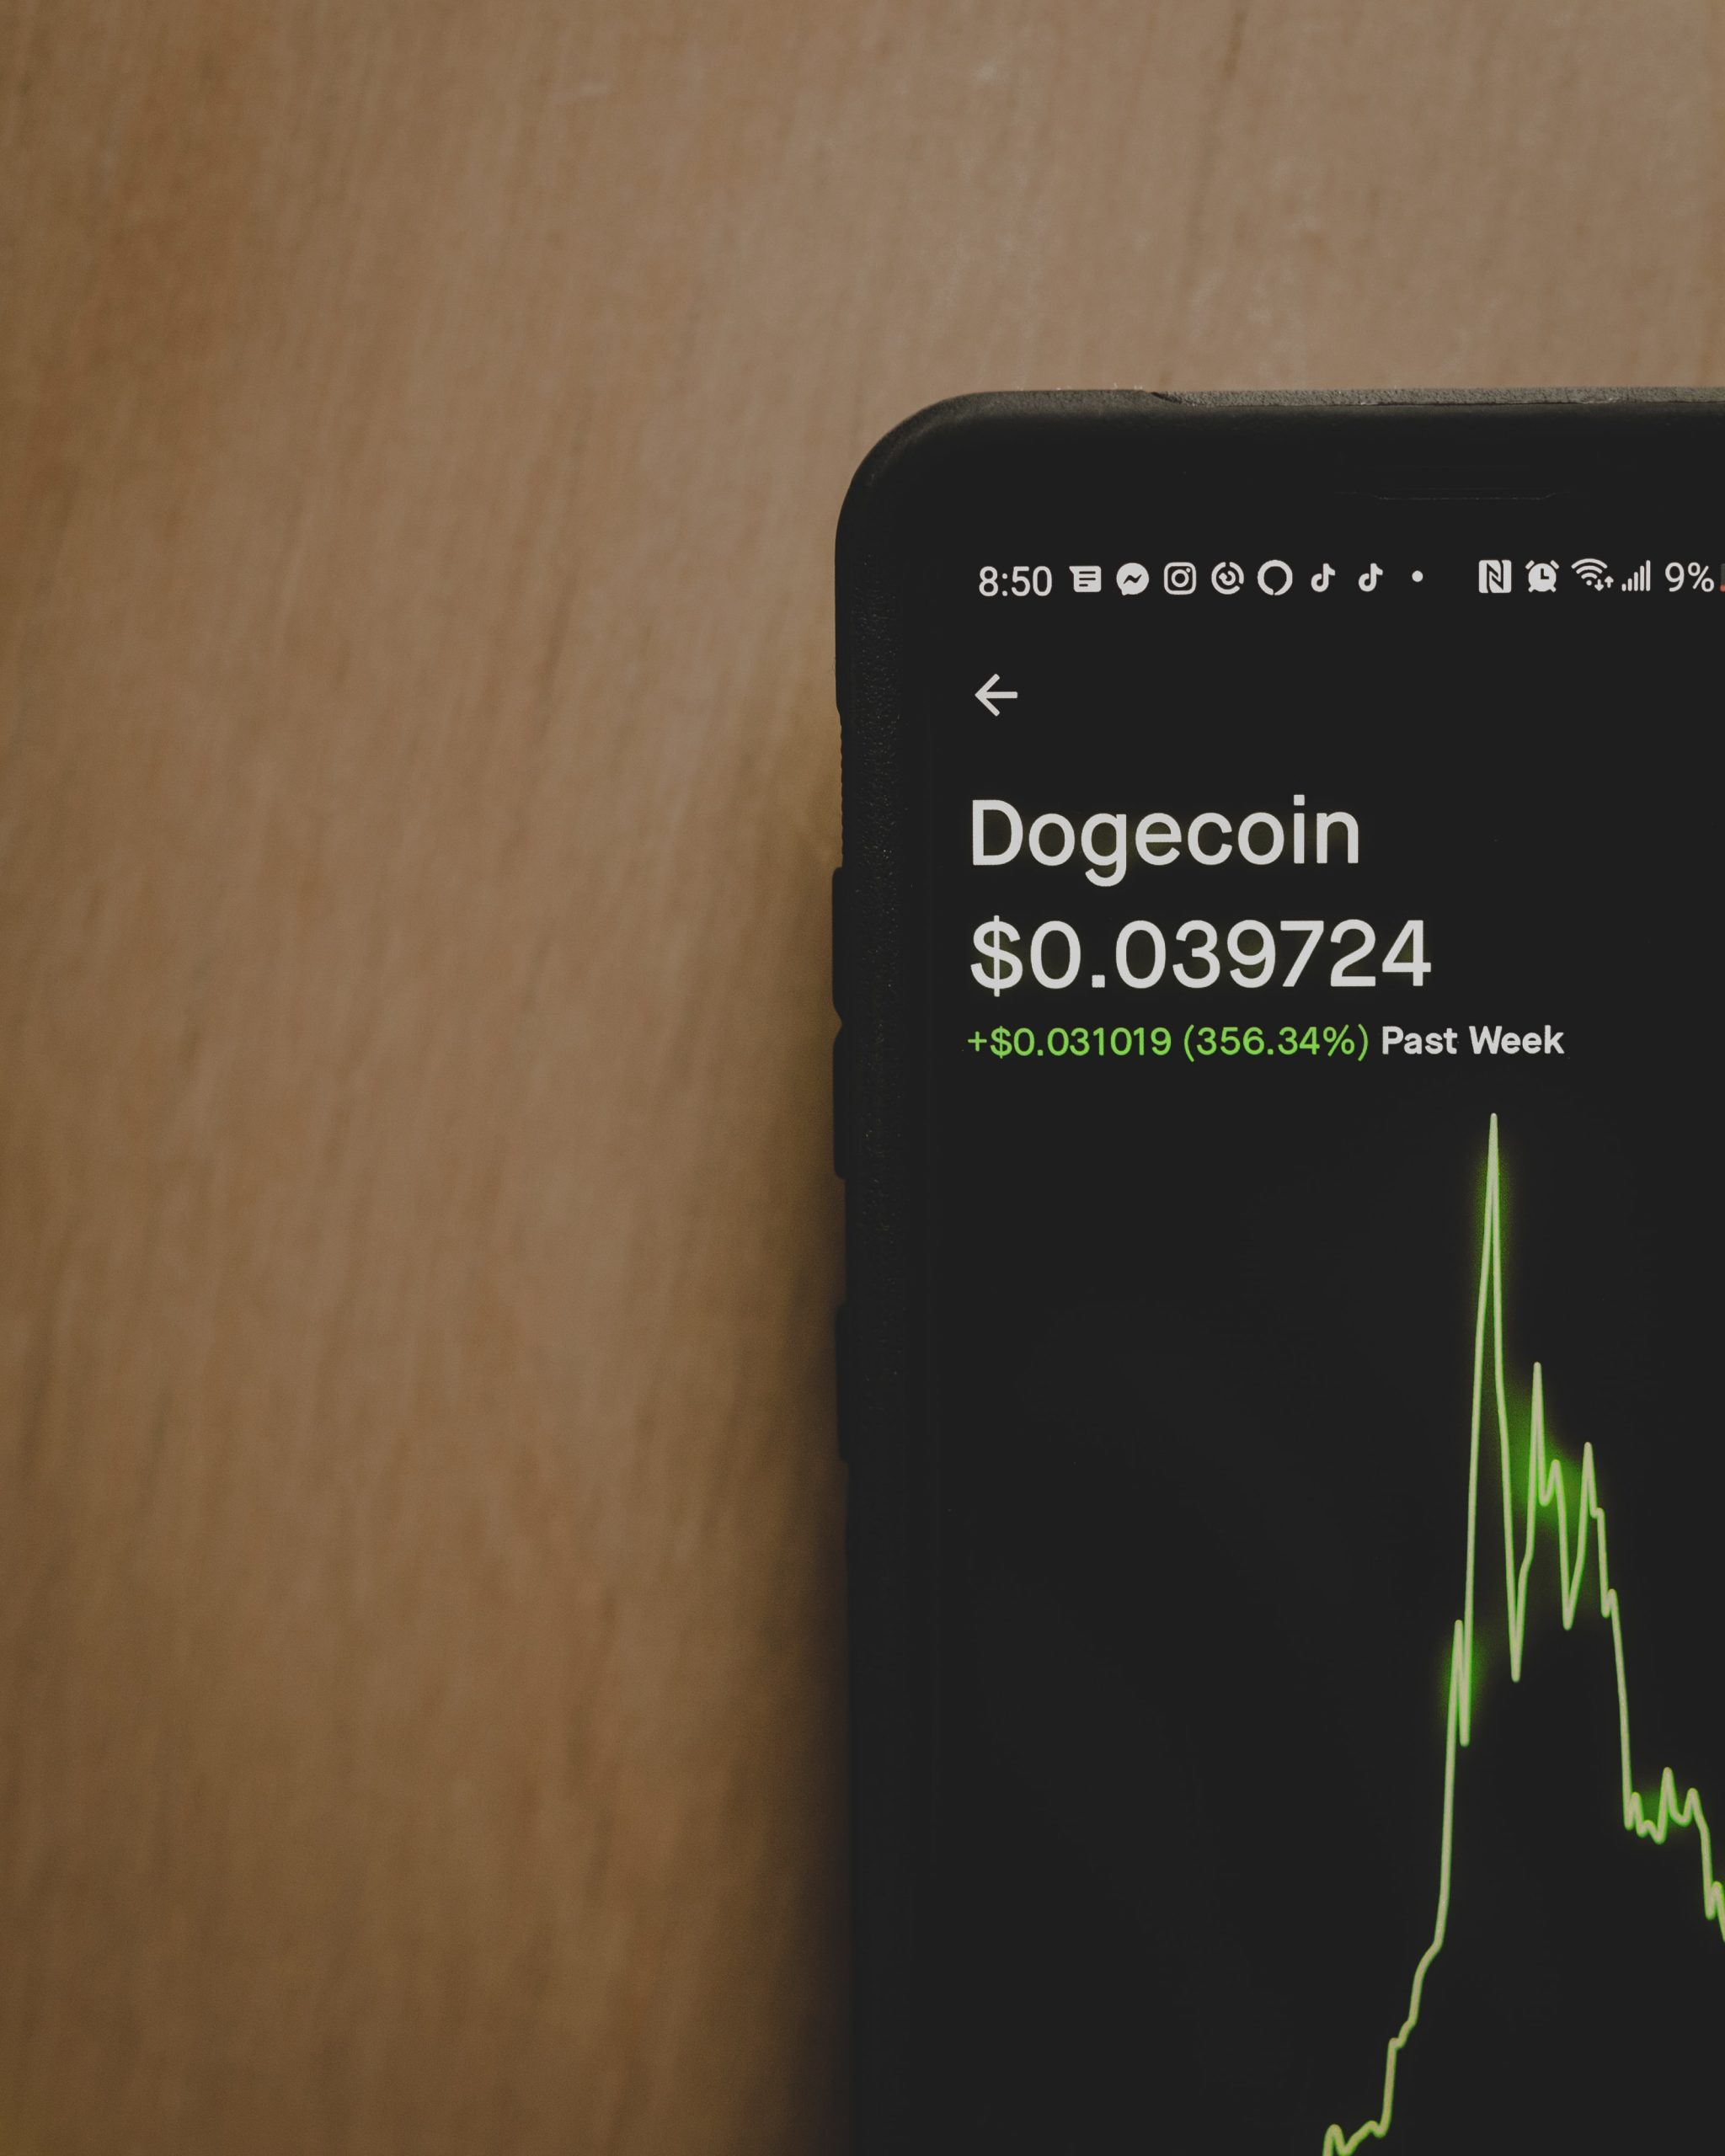 Phone showing Dogecoin chart